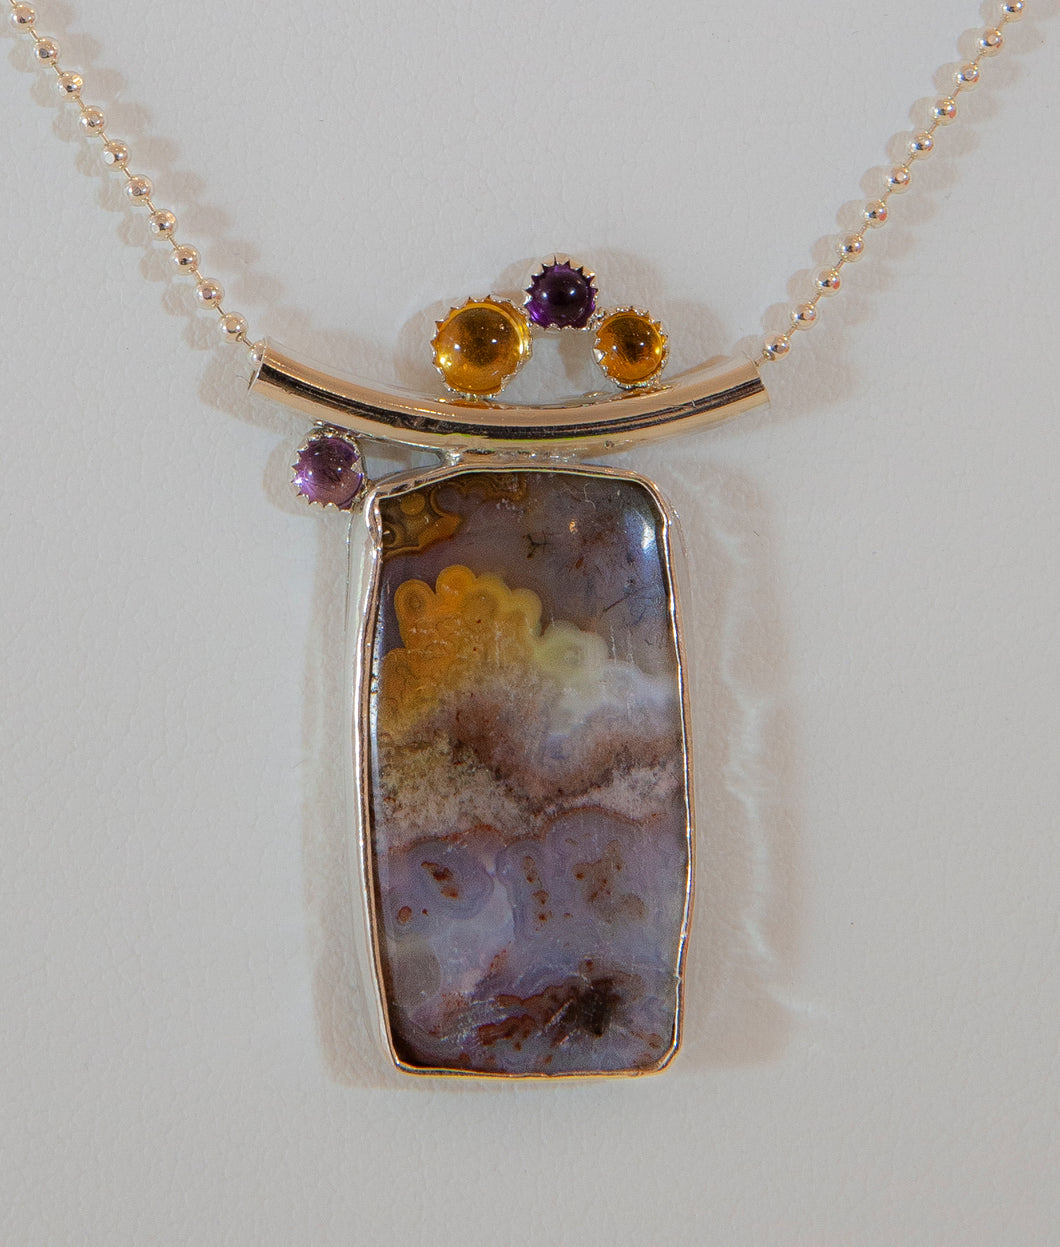 Agate with Amethyst and Topaz